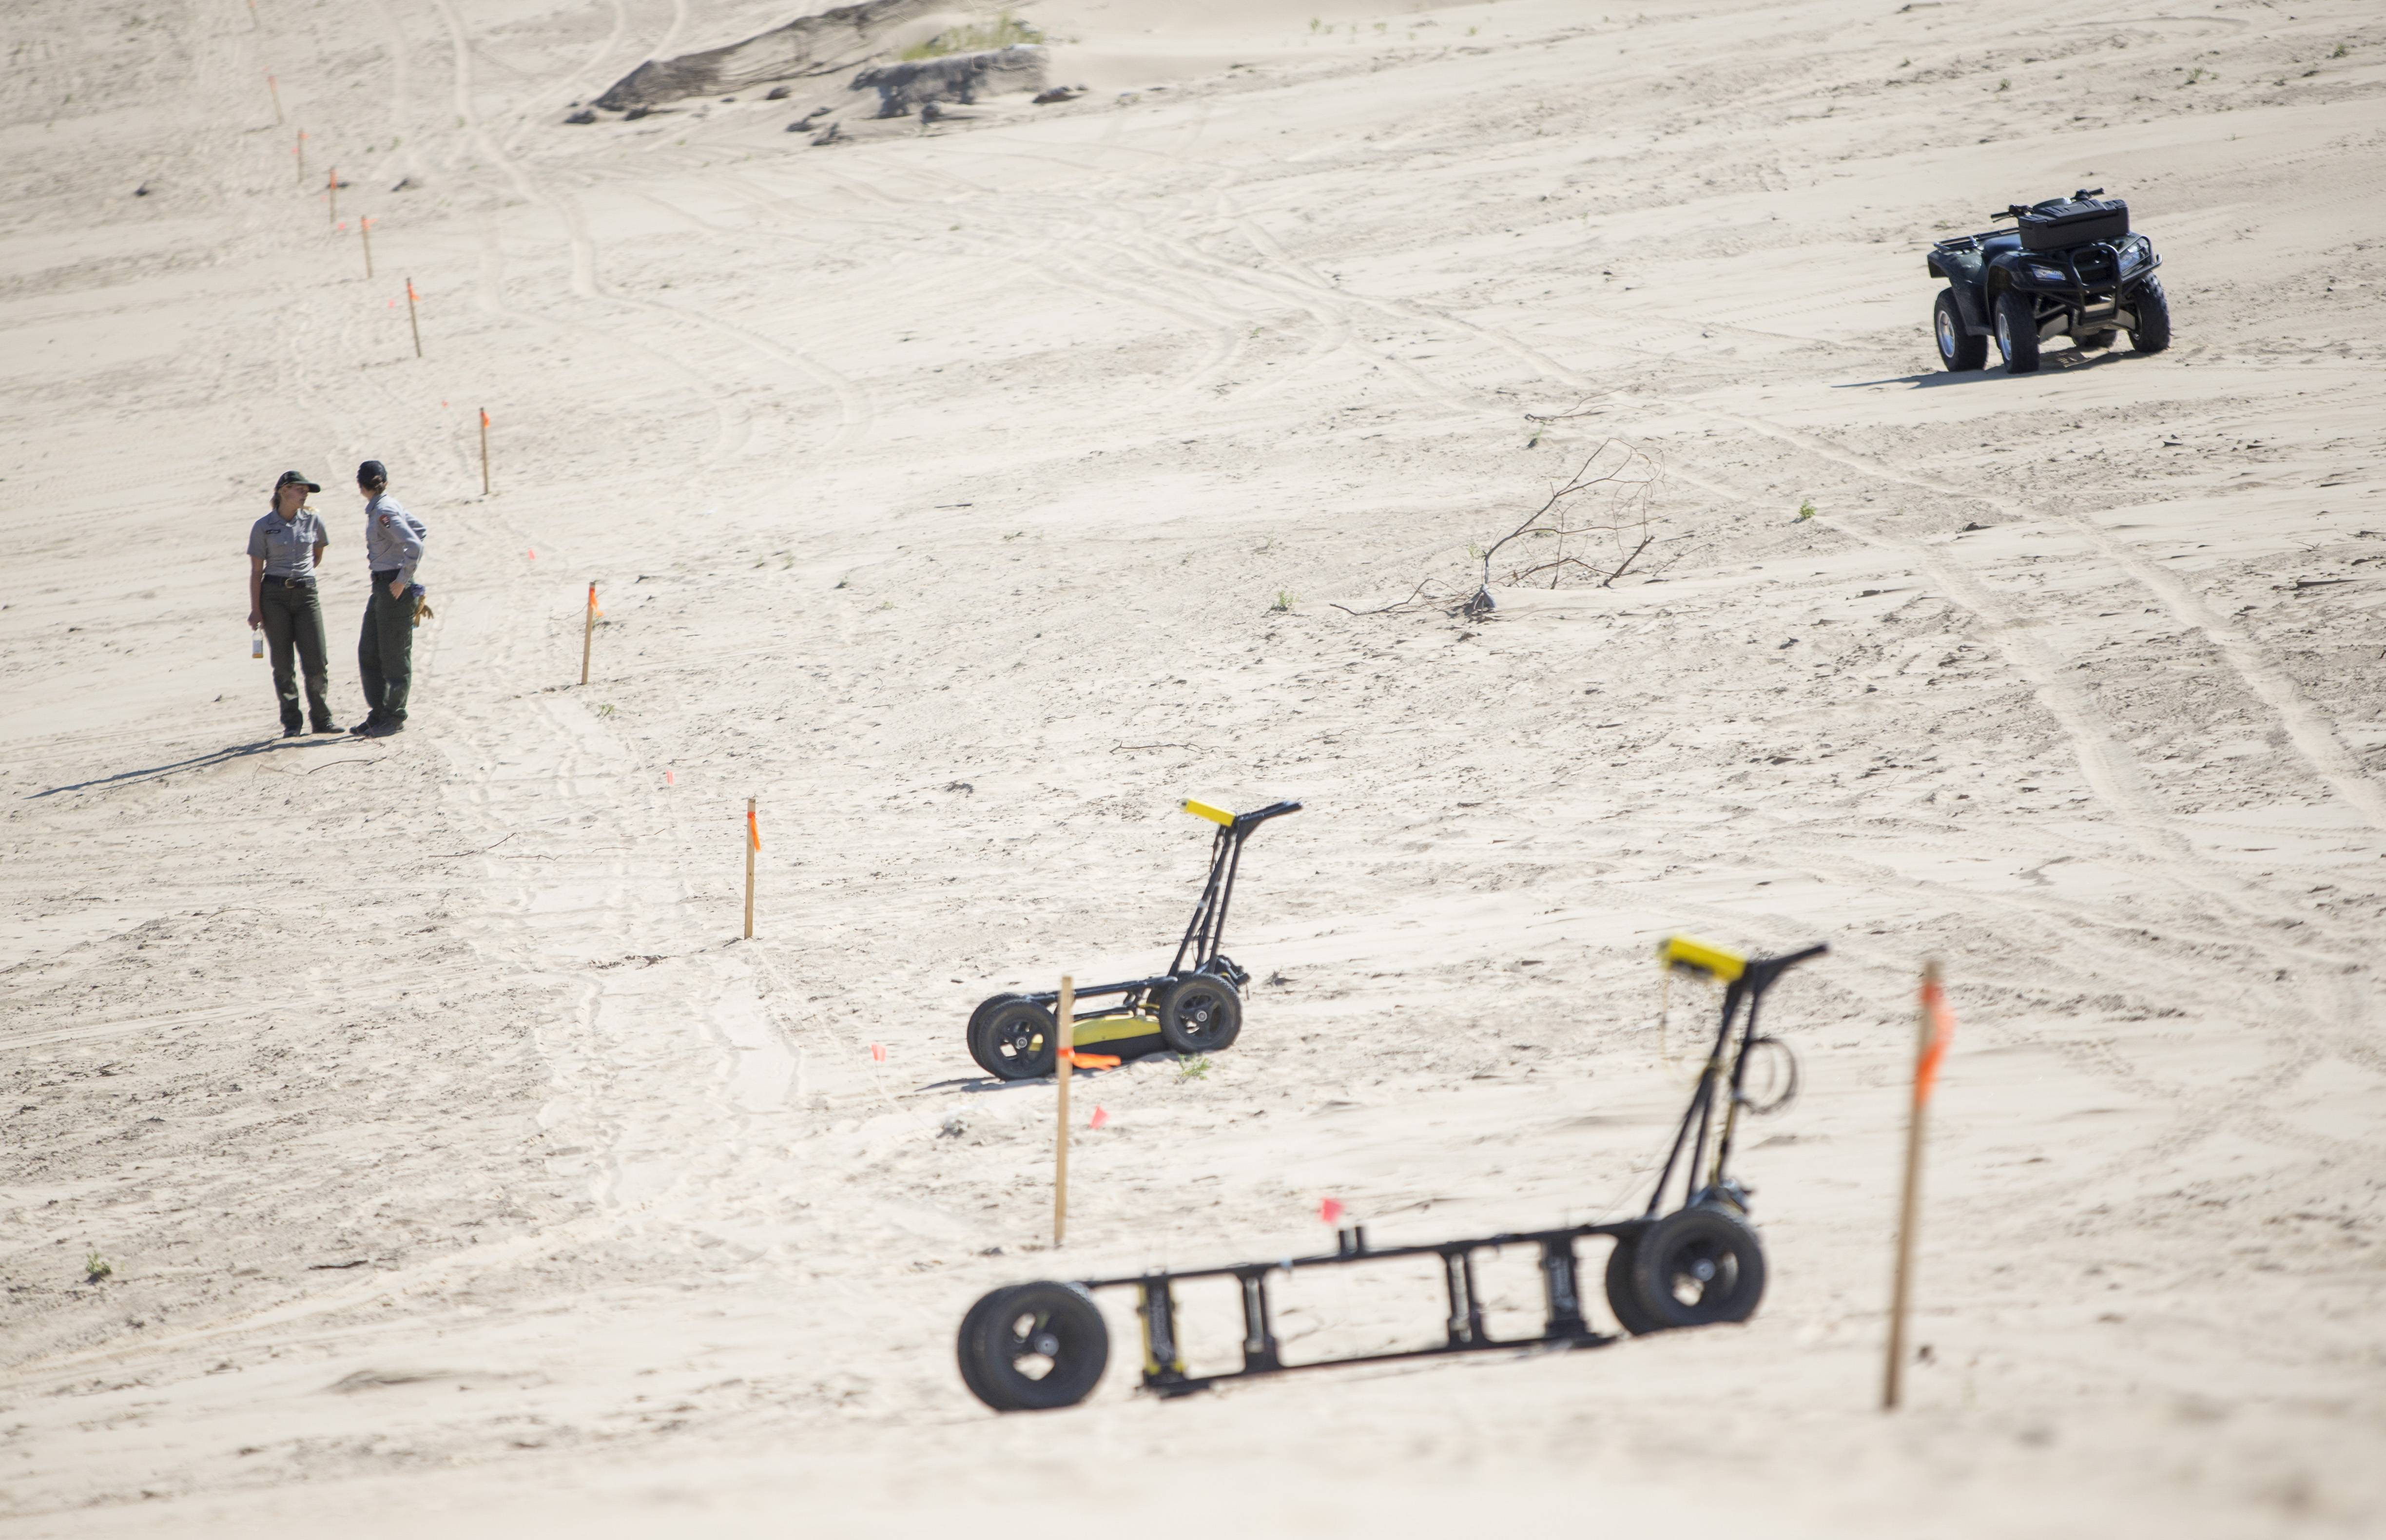 Mount Baldy has been closed since an Illinois boy became buried in the popular sand dune.